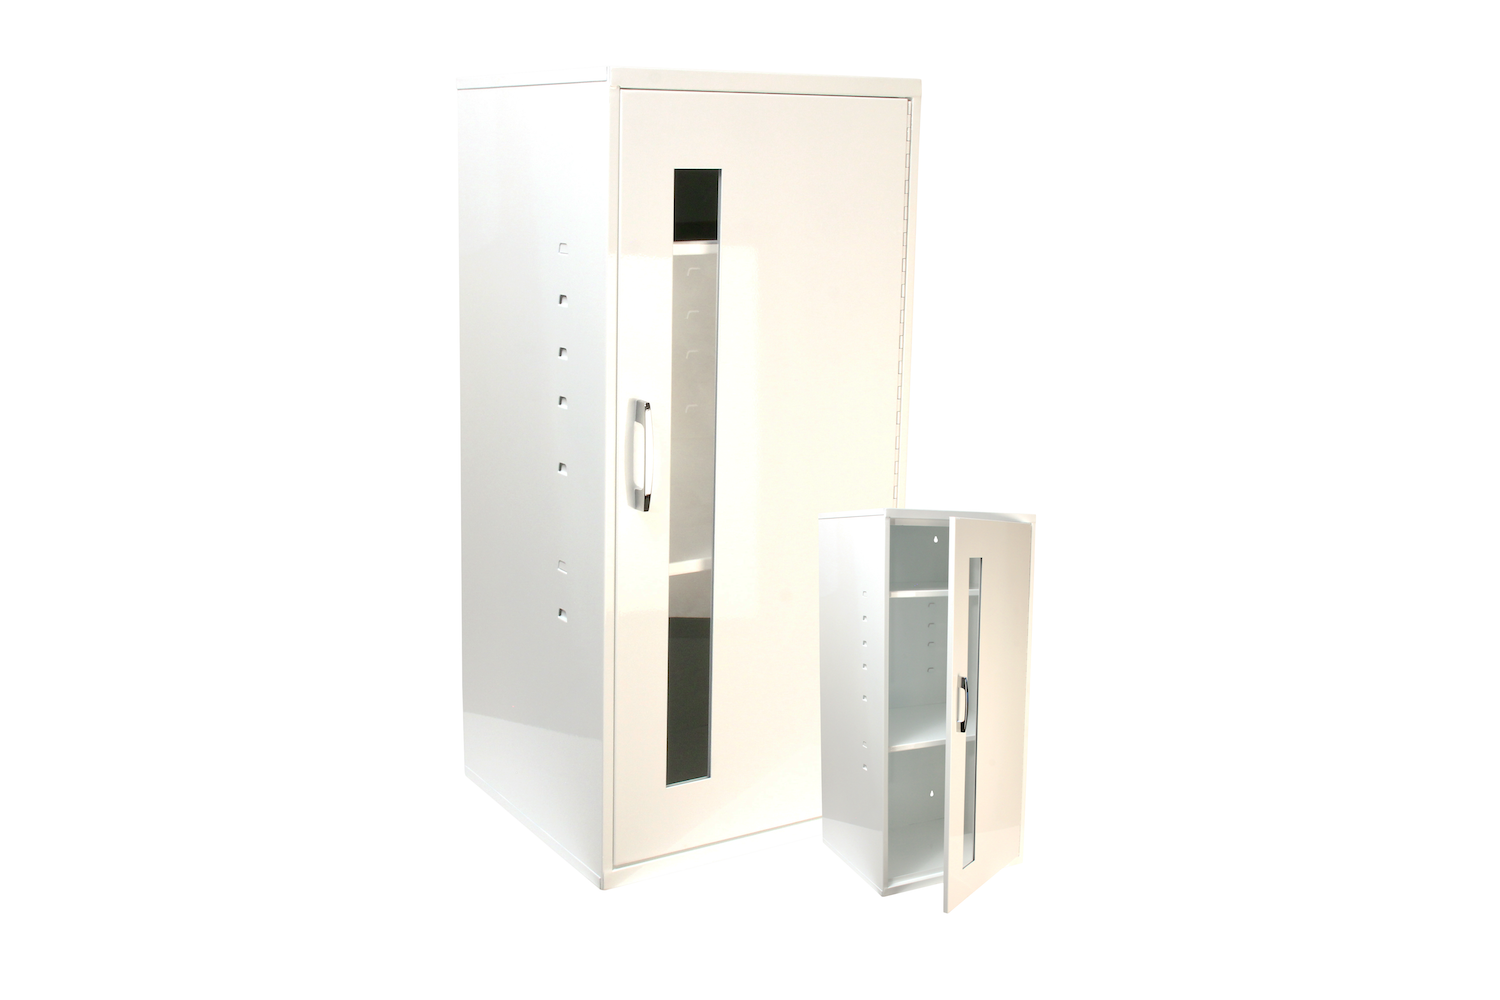 """Universal Storage Cabinet   Inside dimensions 13 3/4 x 30 x 12 7/8"""" 20 ga steel / individual weight 27 lbs Individual carton Maximum QTY per 40 x 48"""" pallet—22 Gloss white powder coating  Two shelves / window / pull handle included"""